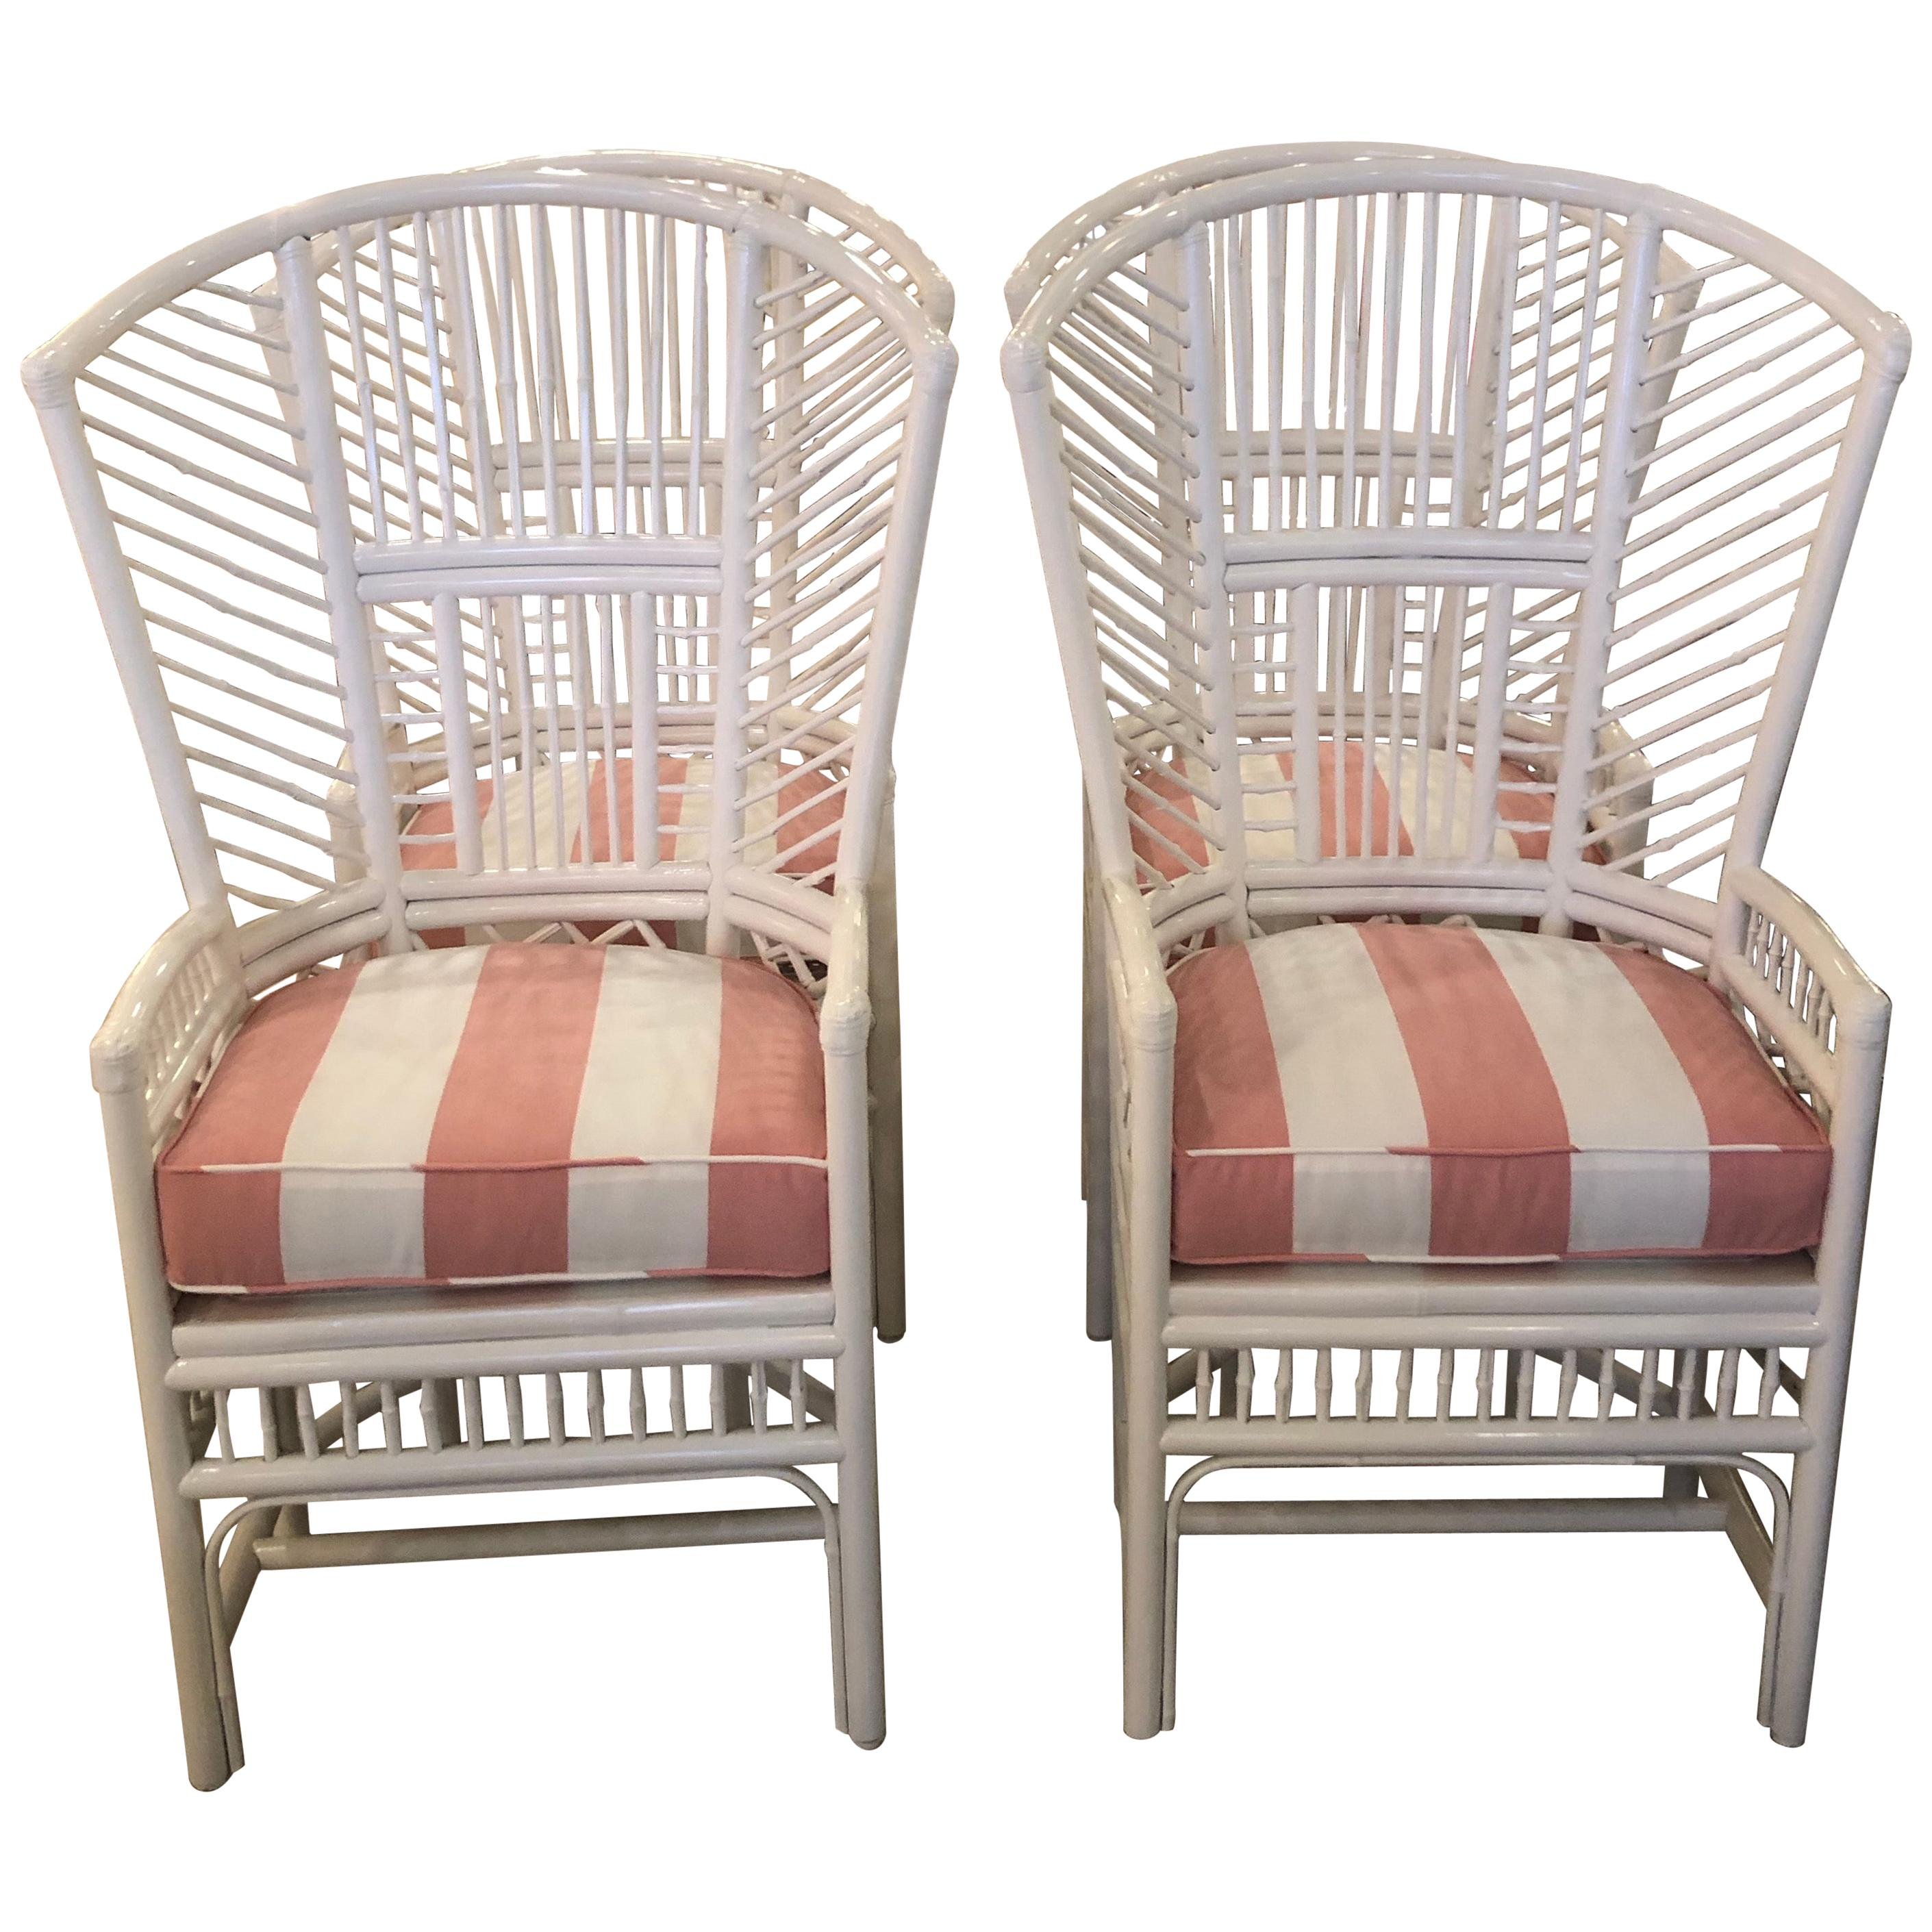 Set of 4 High Back Brighton Style Lacquered White Rattan Dining Chairs